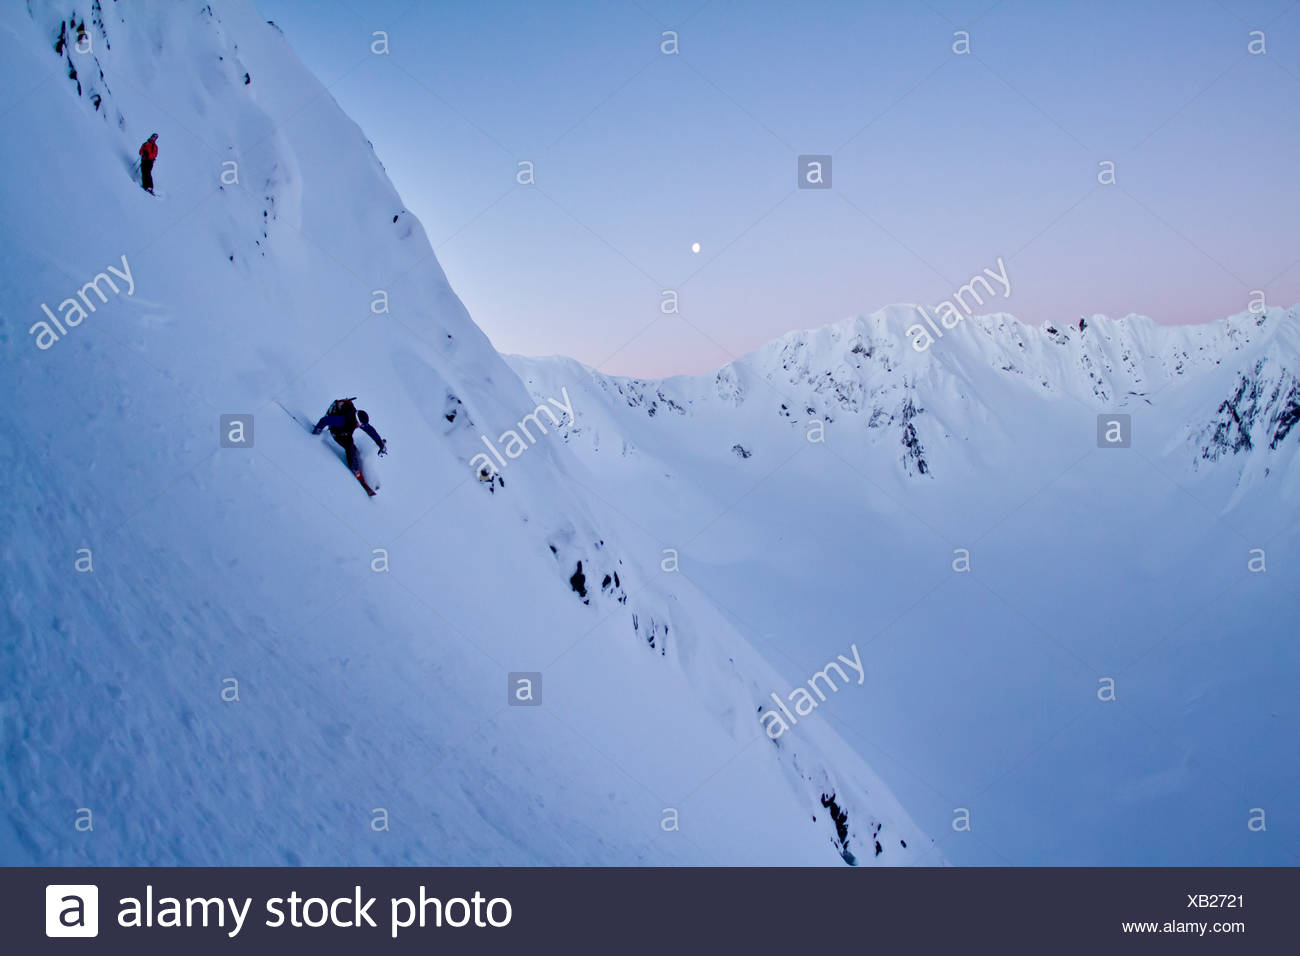 Skier and his spotter skiing steep powder on the north side of Kickstep Mountain, Turnagain Pass, Kenai Mountains, Alaska. MR - Stock Image